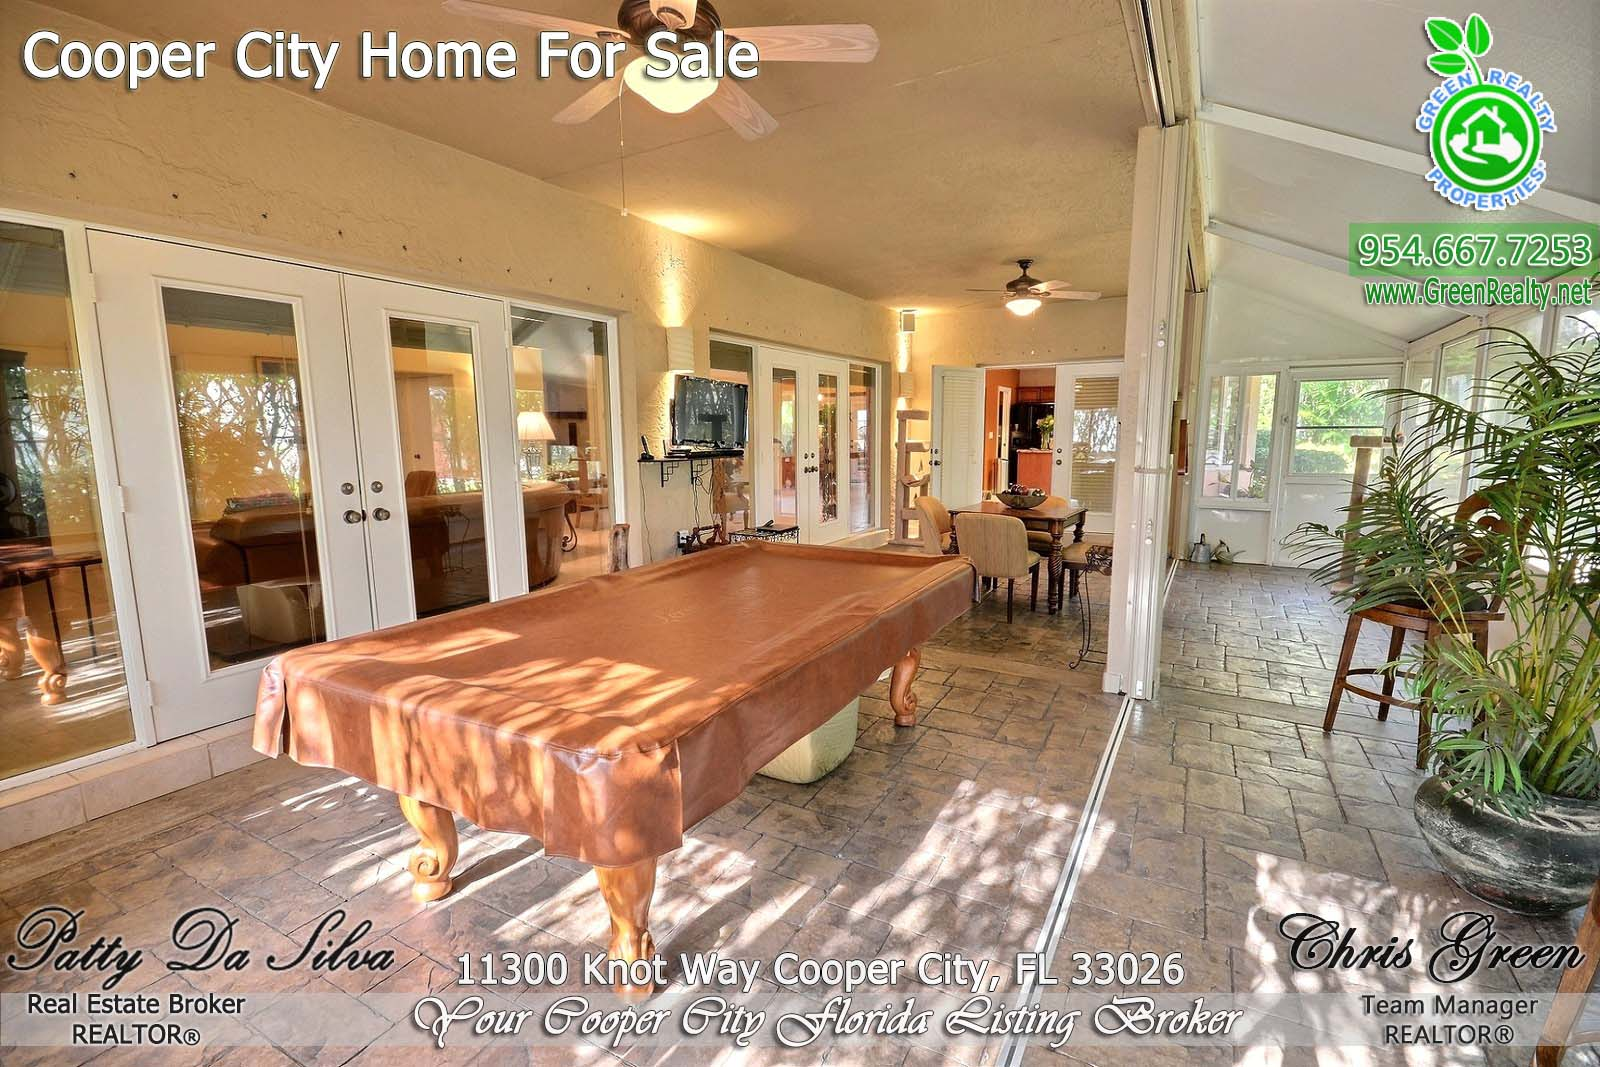 45 Rock Creek Cooper City Homes For Sale (3)